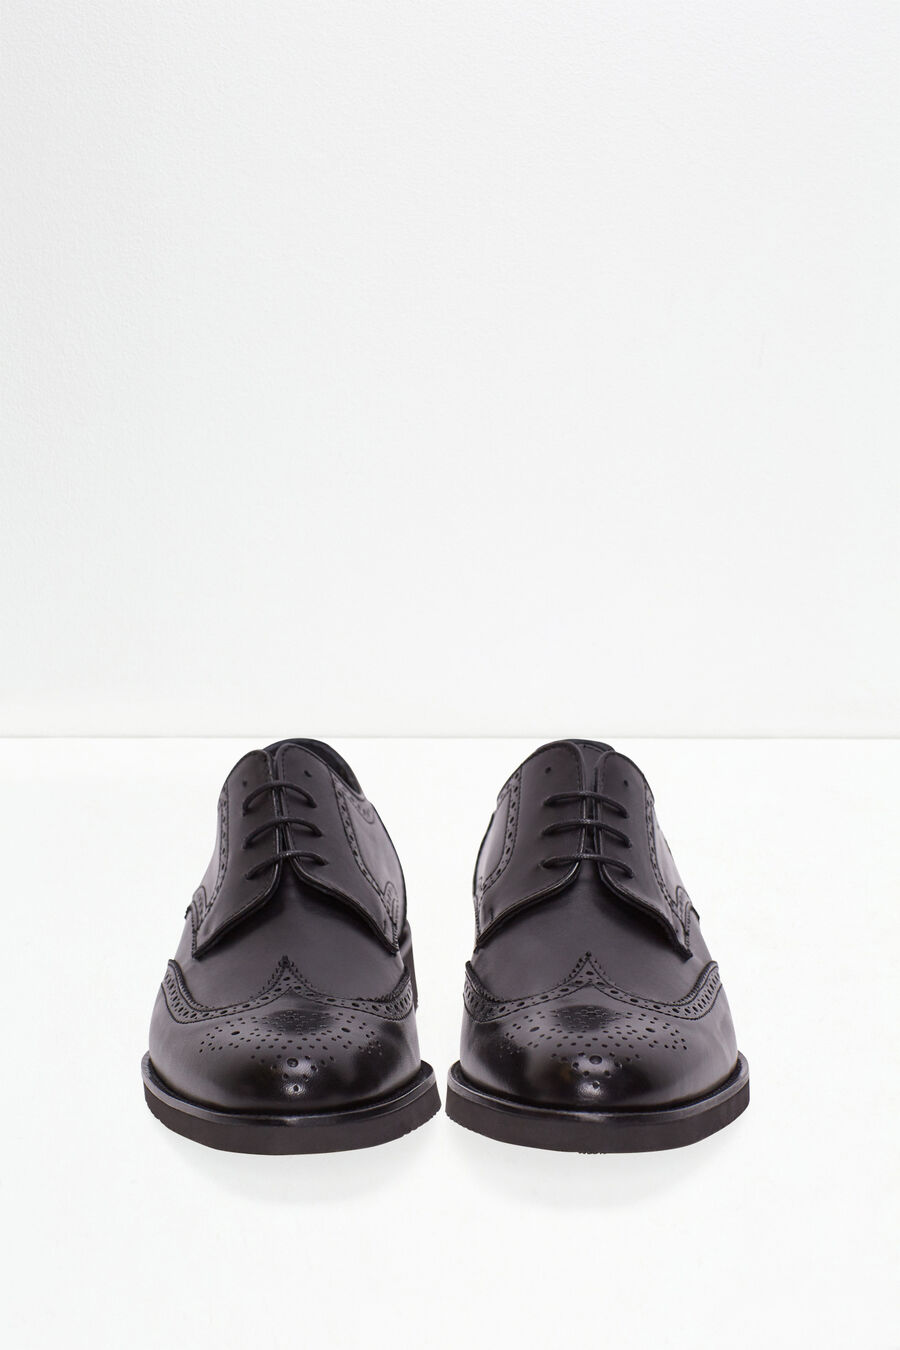 Blucher shoe